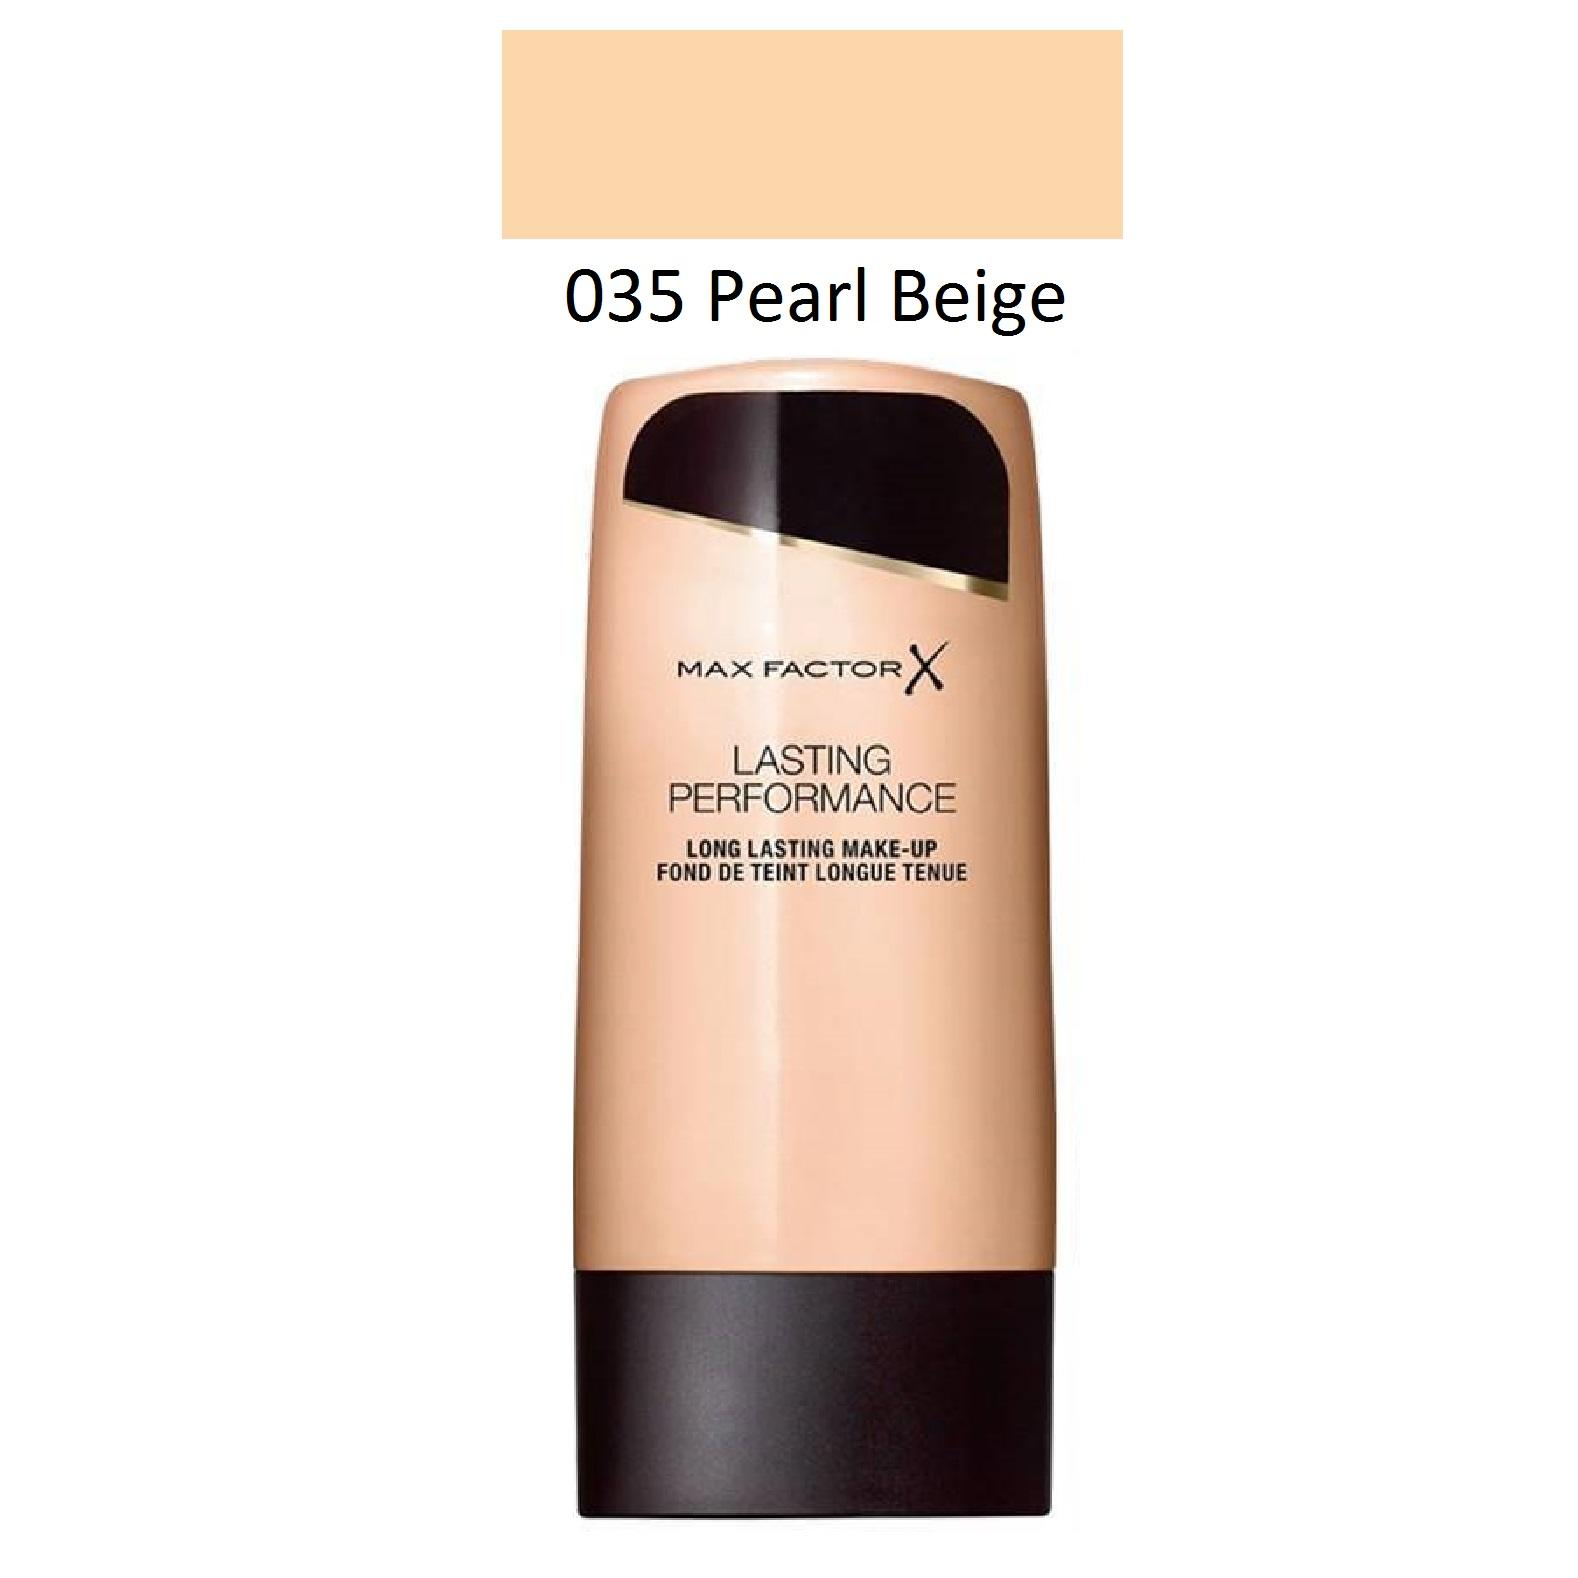 Max Factor Lasting Performance Foundation 035 Pearl Beige